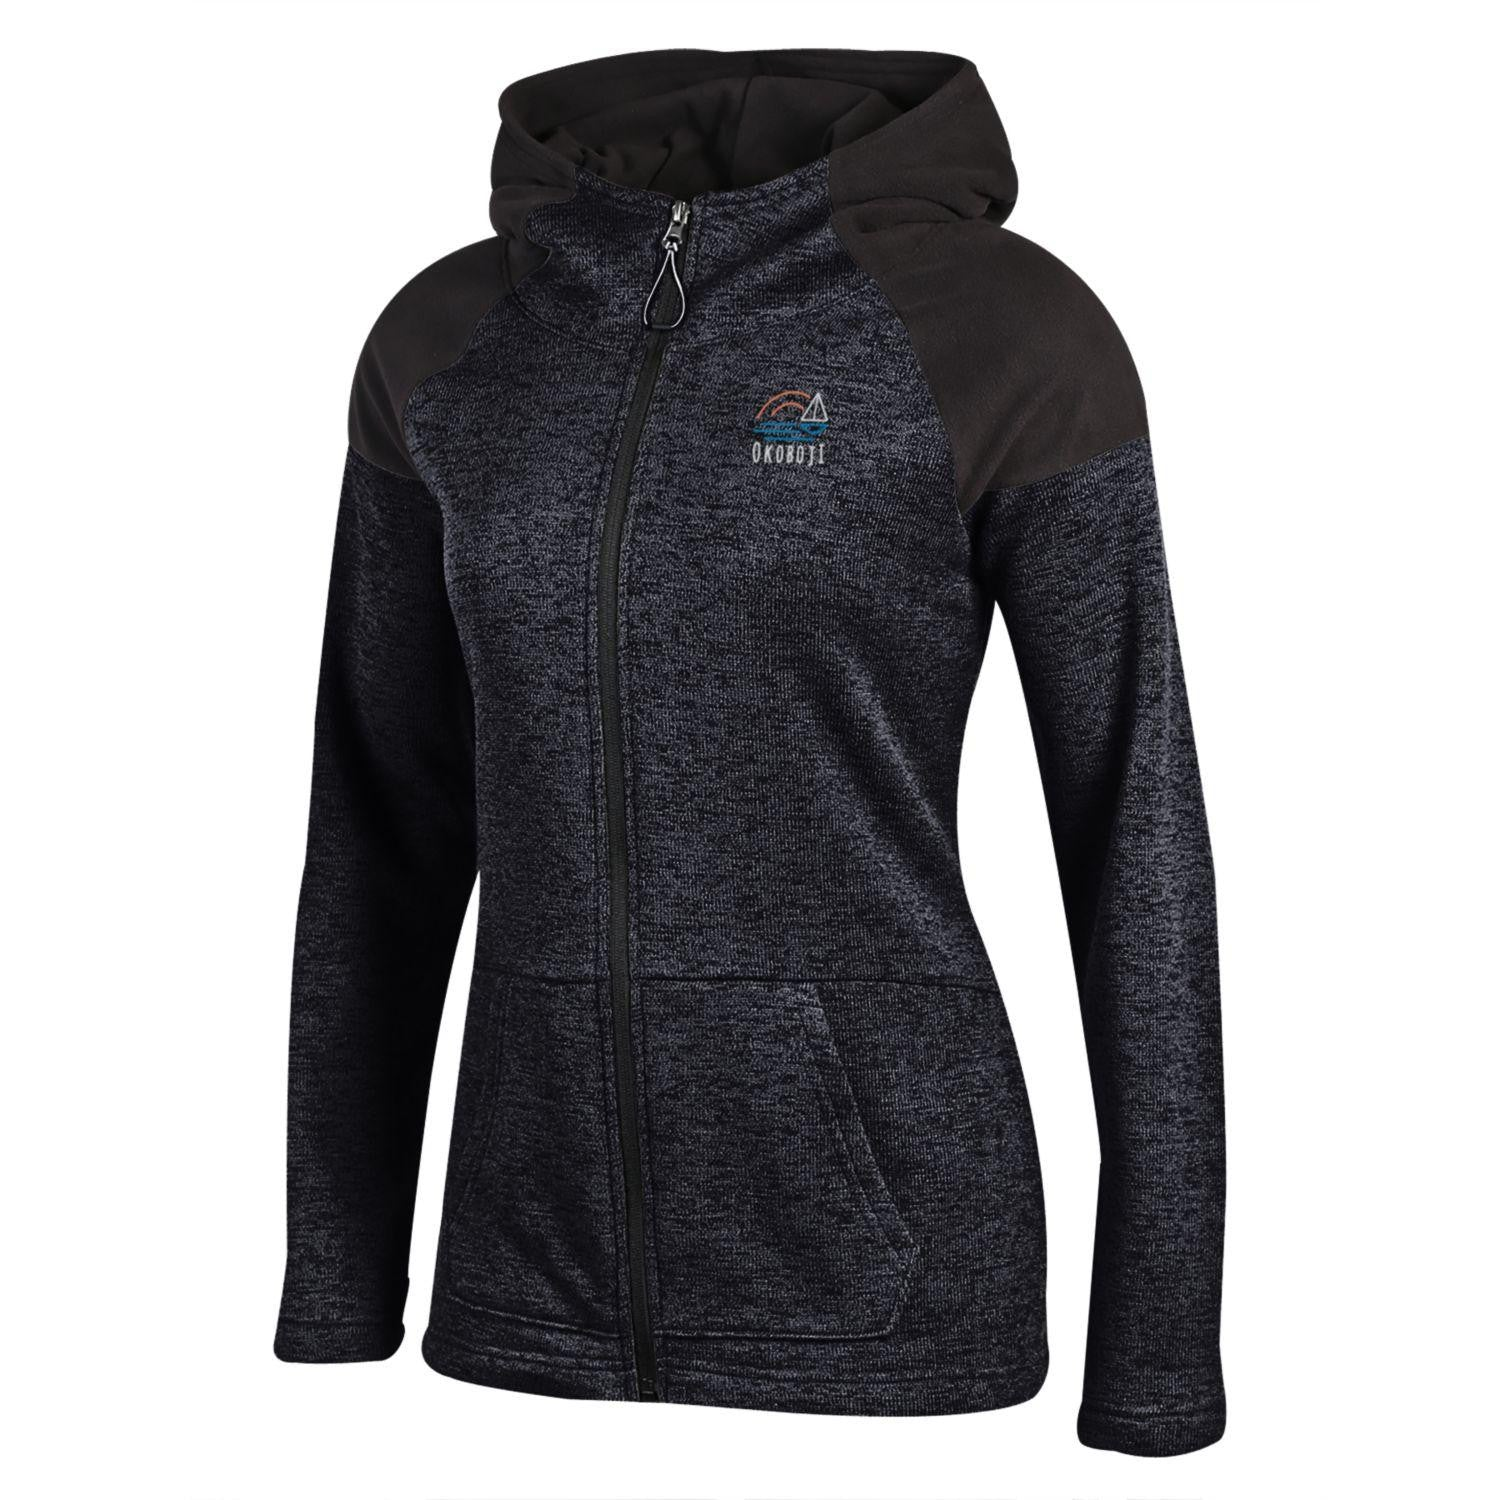 Women's Cross Country Full Zip - Black